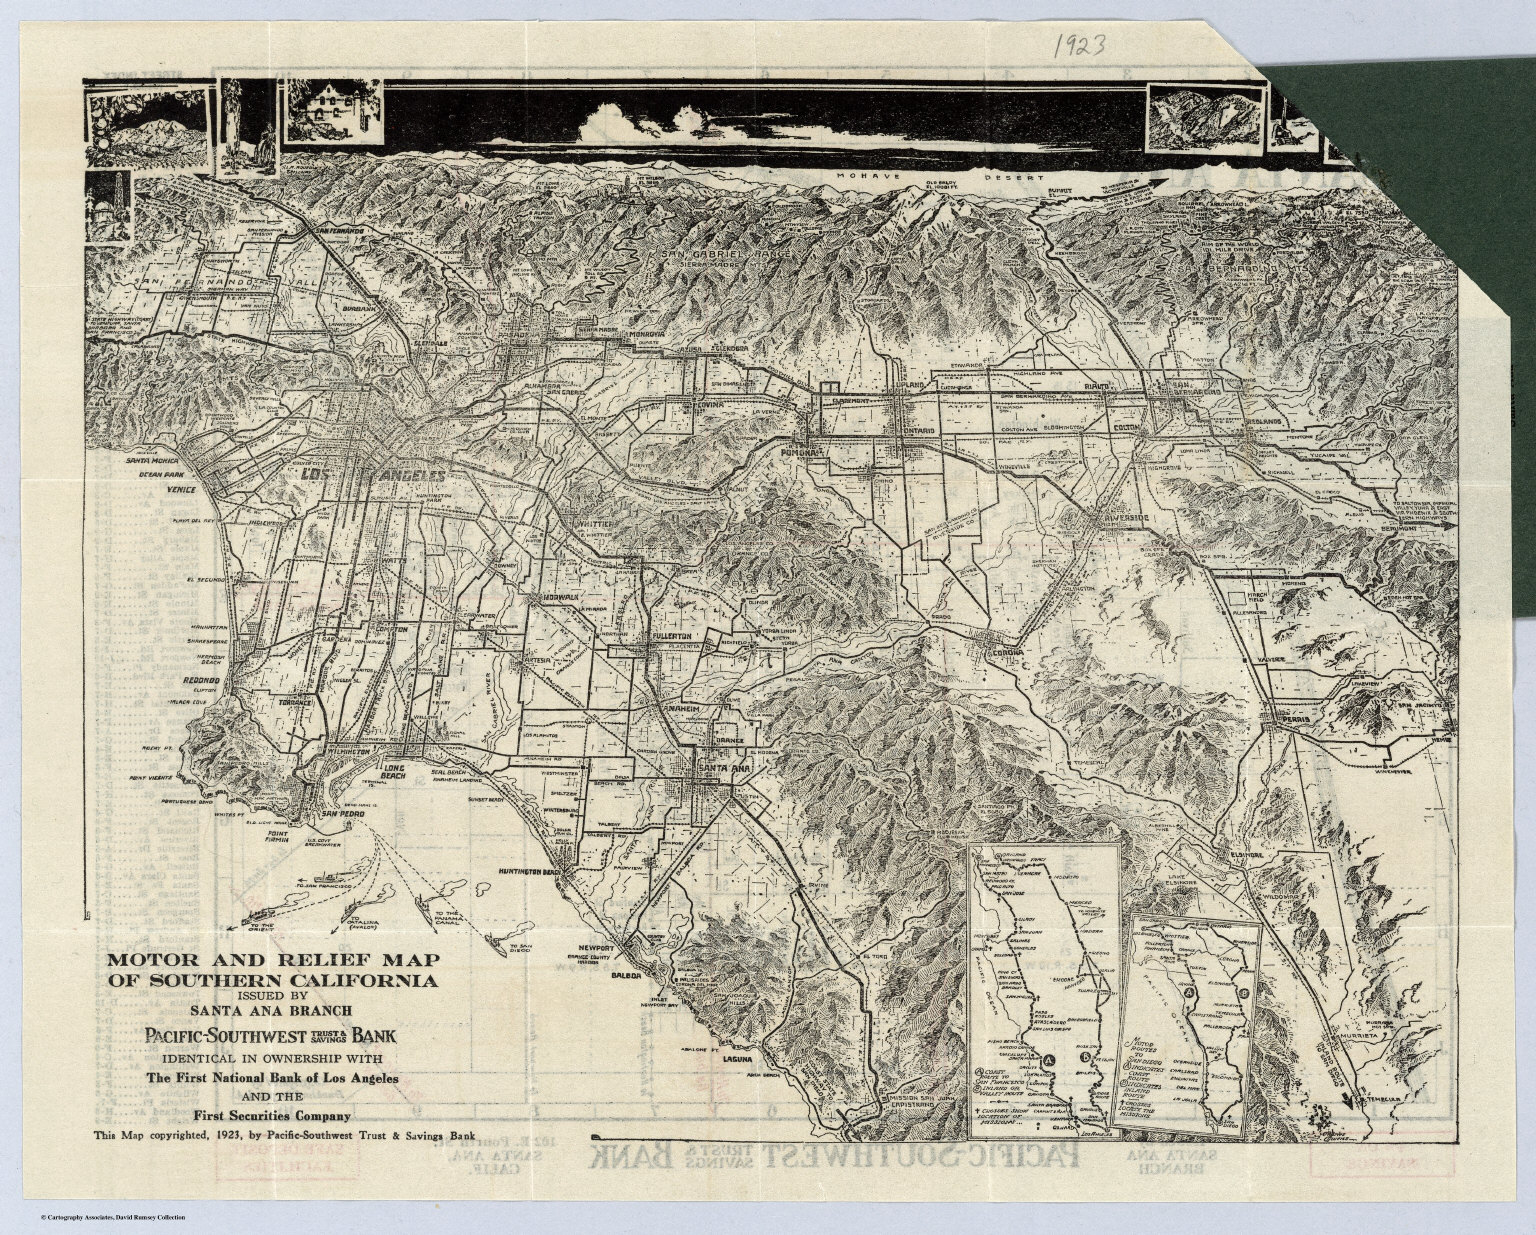 Santa Ana, California - David Rumsey Historical Map Collection - Relief Map Of Southern California